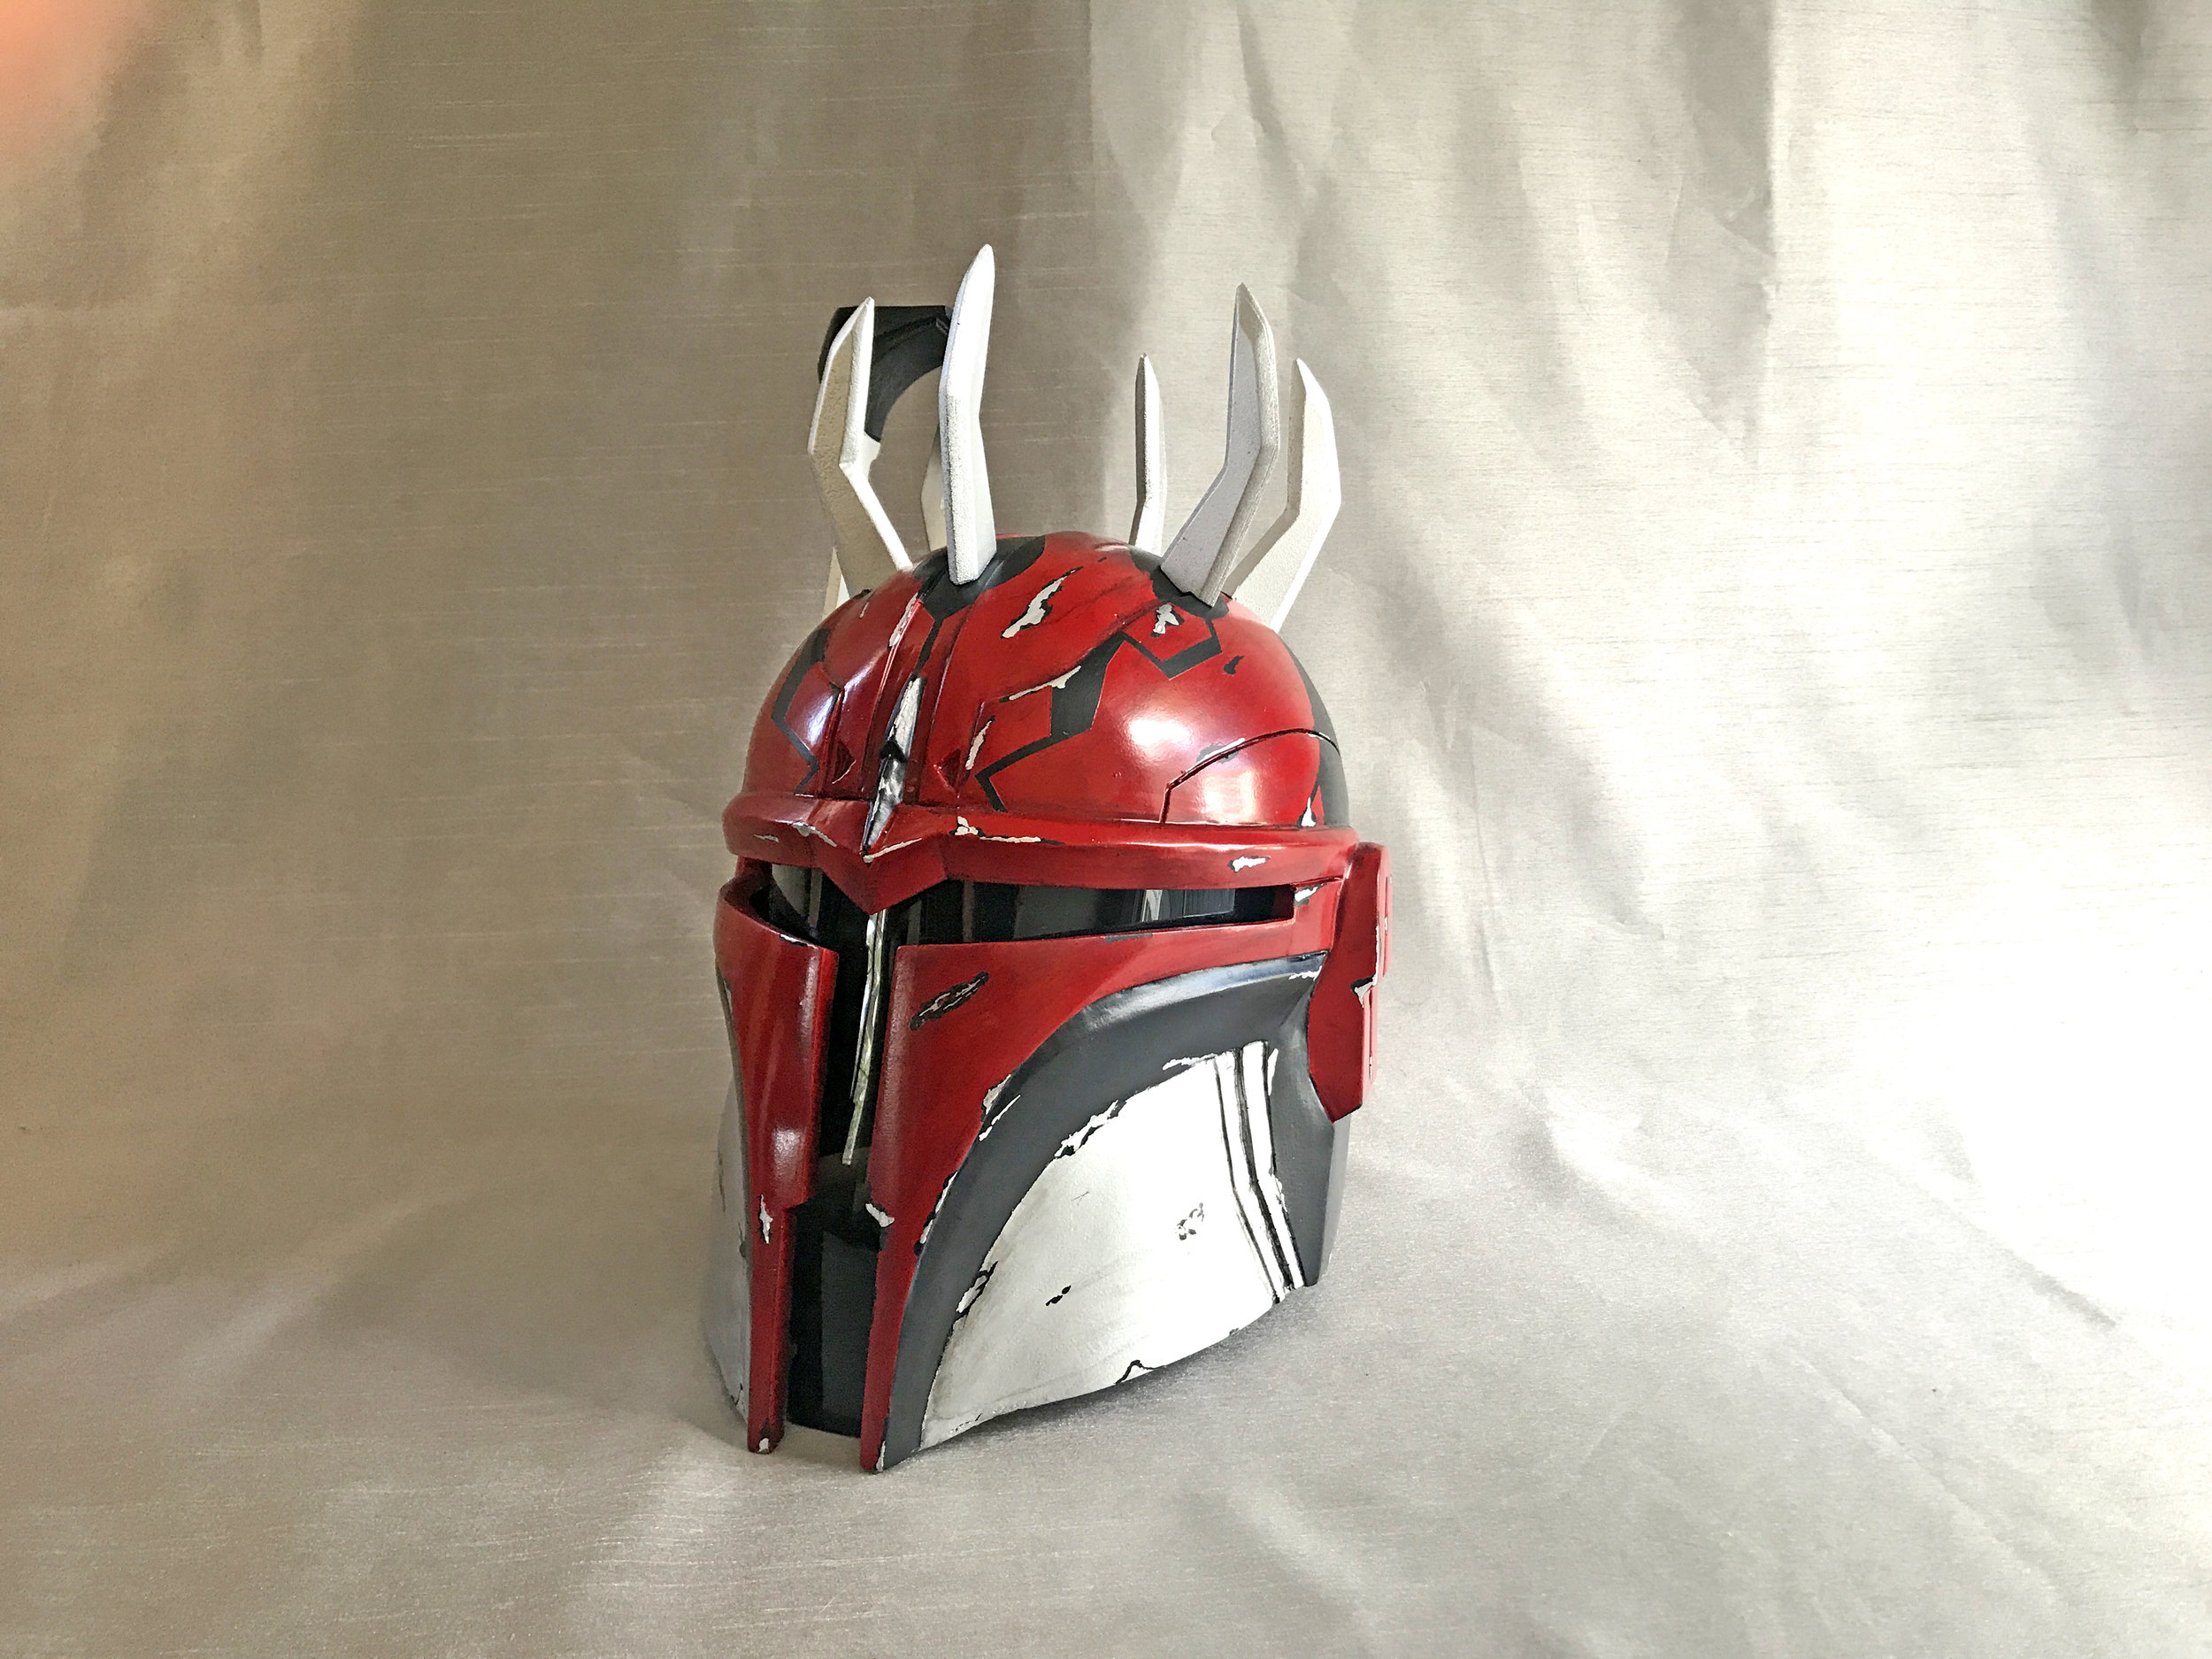 Contacted by a client who loved our Variant style helmet, we were asked to create a stunning piece inspired by Darth Maul. To approach something like this we took our basic Variant helmet and prepared it for painting. After priming the helmet we were ready to paint.  There is no template for a project like this. With Darth Maul reference photos we began to mask off the helmet appropriately while also planning to paint the damage.  Once finished we drilled out holes for the horns to be set. We threaded the horns to accept screws from the underside. The visor was then set and screwed in to provide a removable lens. Five helmet squares were added and the project was marked as complete.